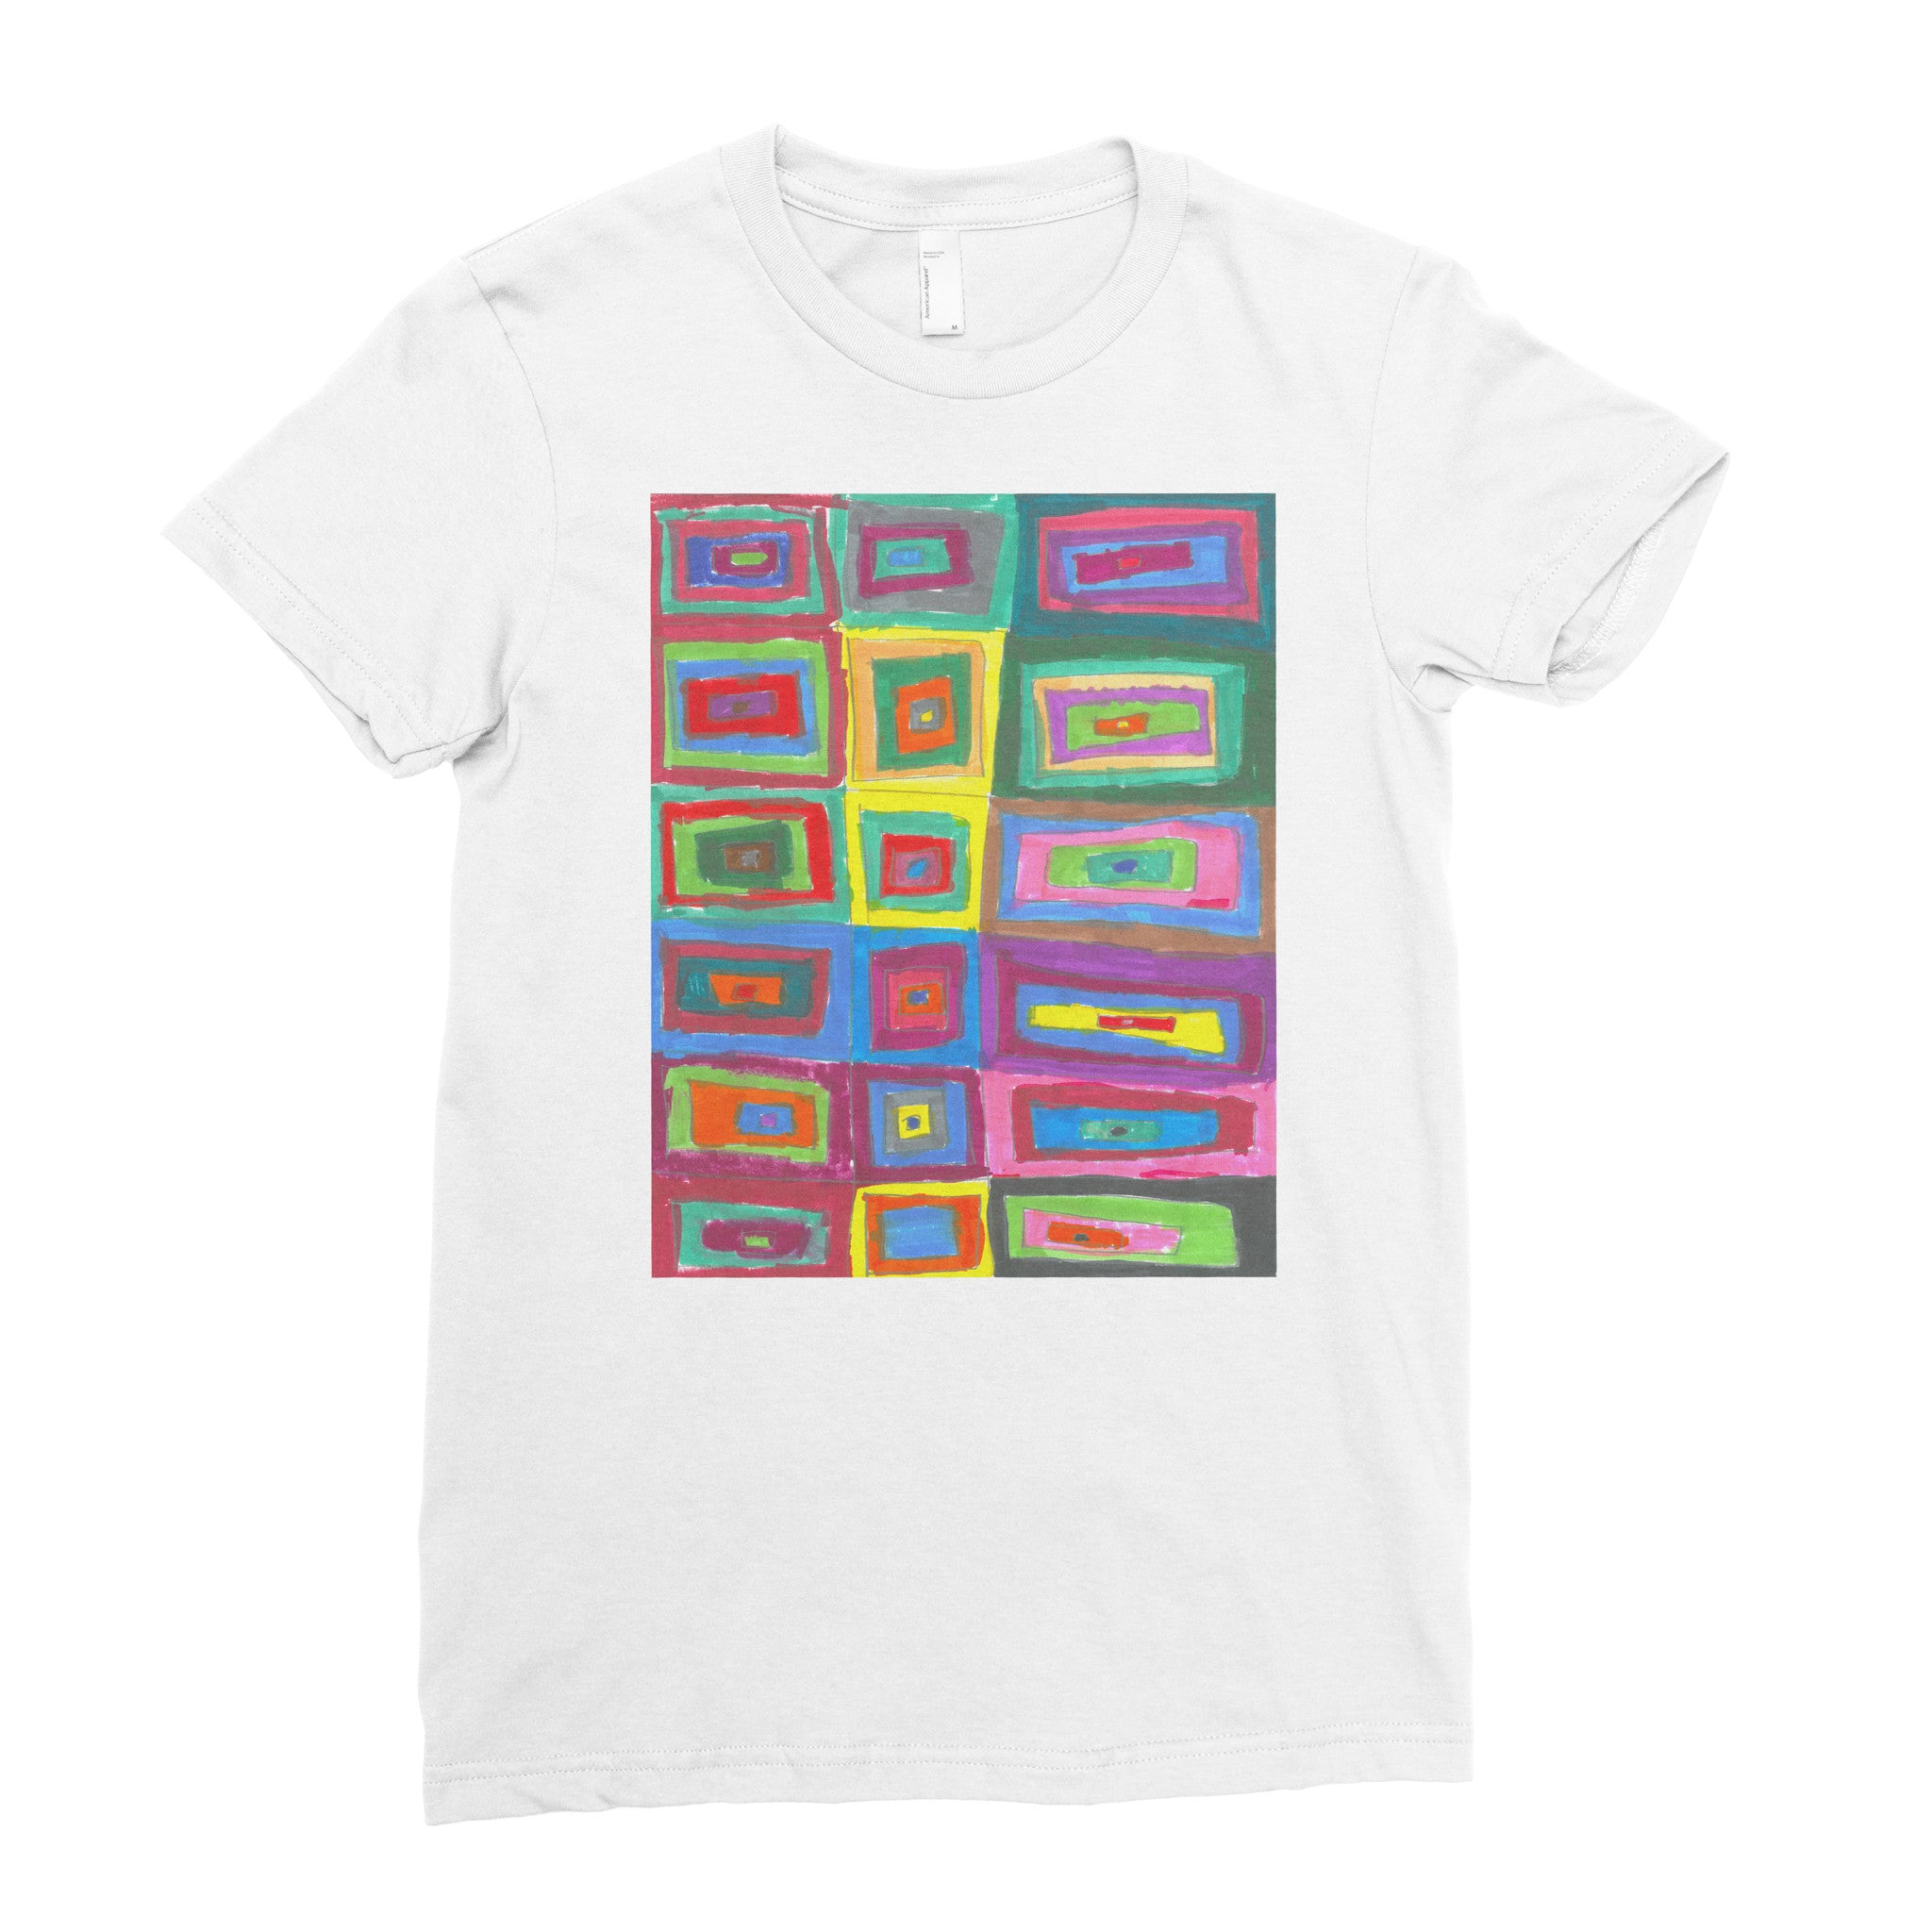 Yanelis, 4th grade - Adult T-shirt - Rightside Shirts